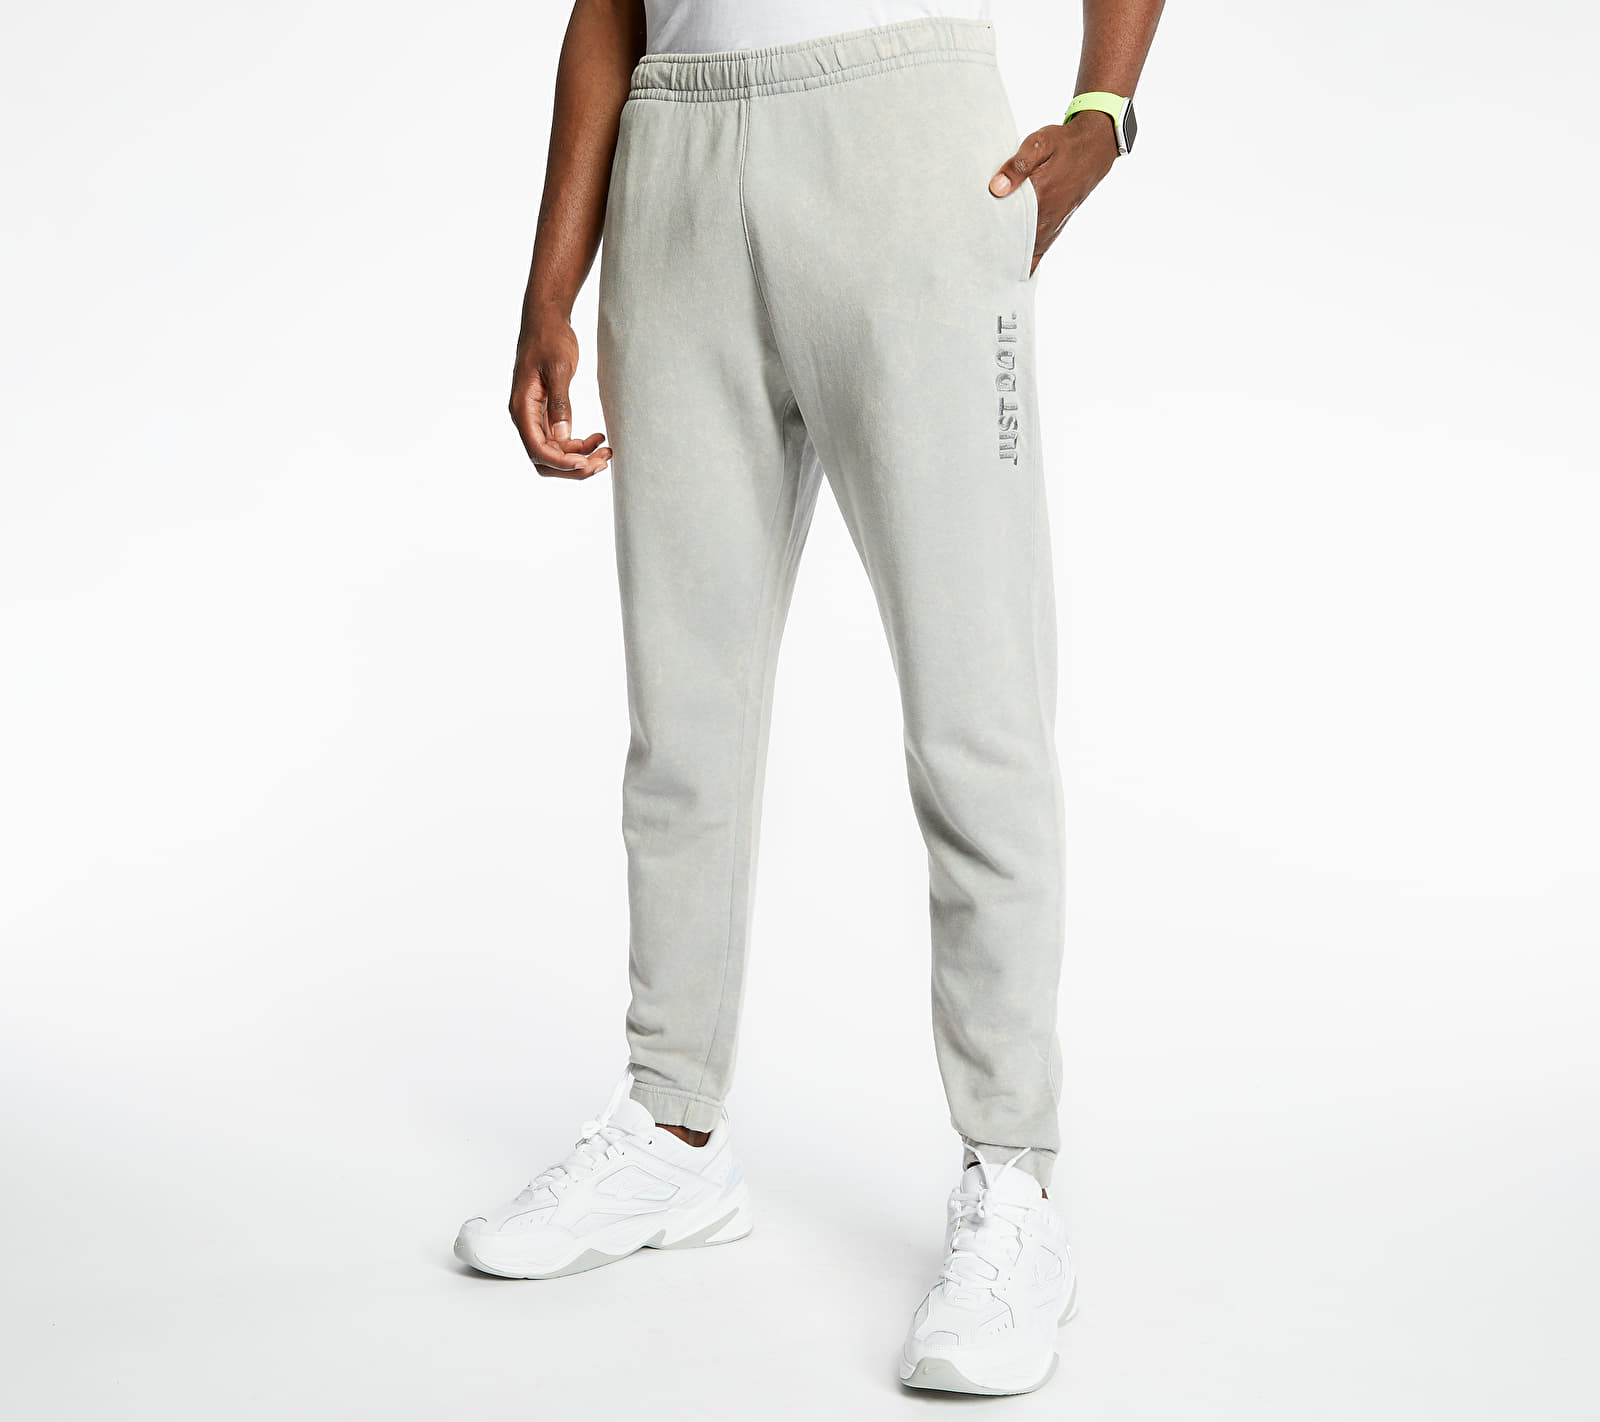 Nike Sportswear Just Do It Wash Pants Lt Smoke Grey/ Lt Smoke Grey, Gray